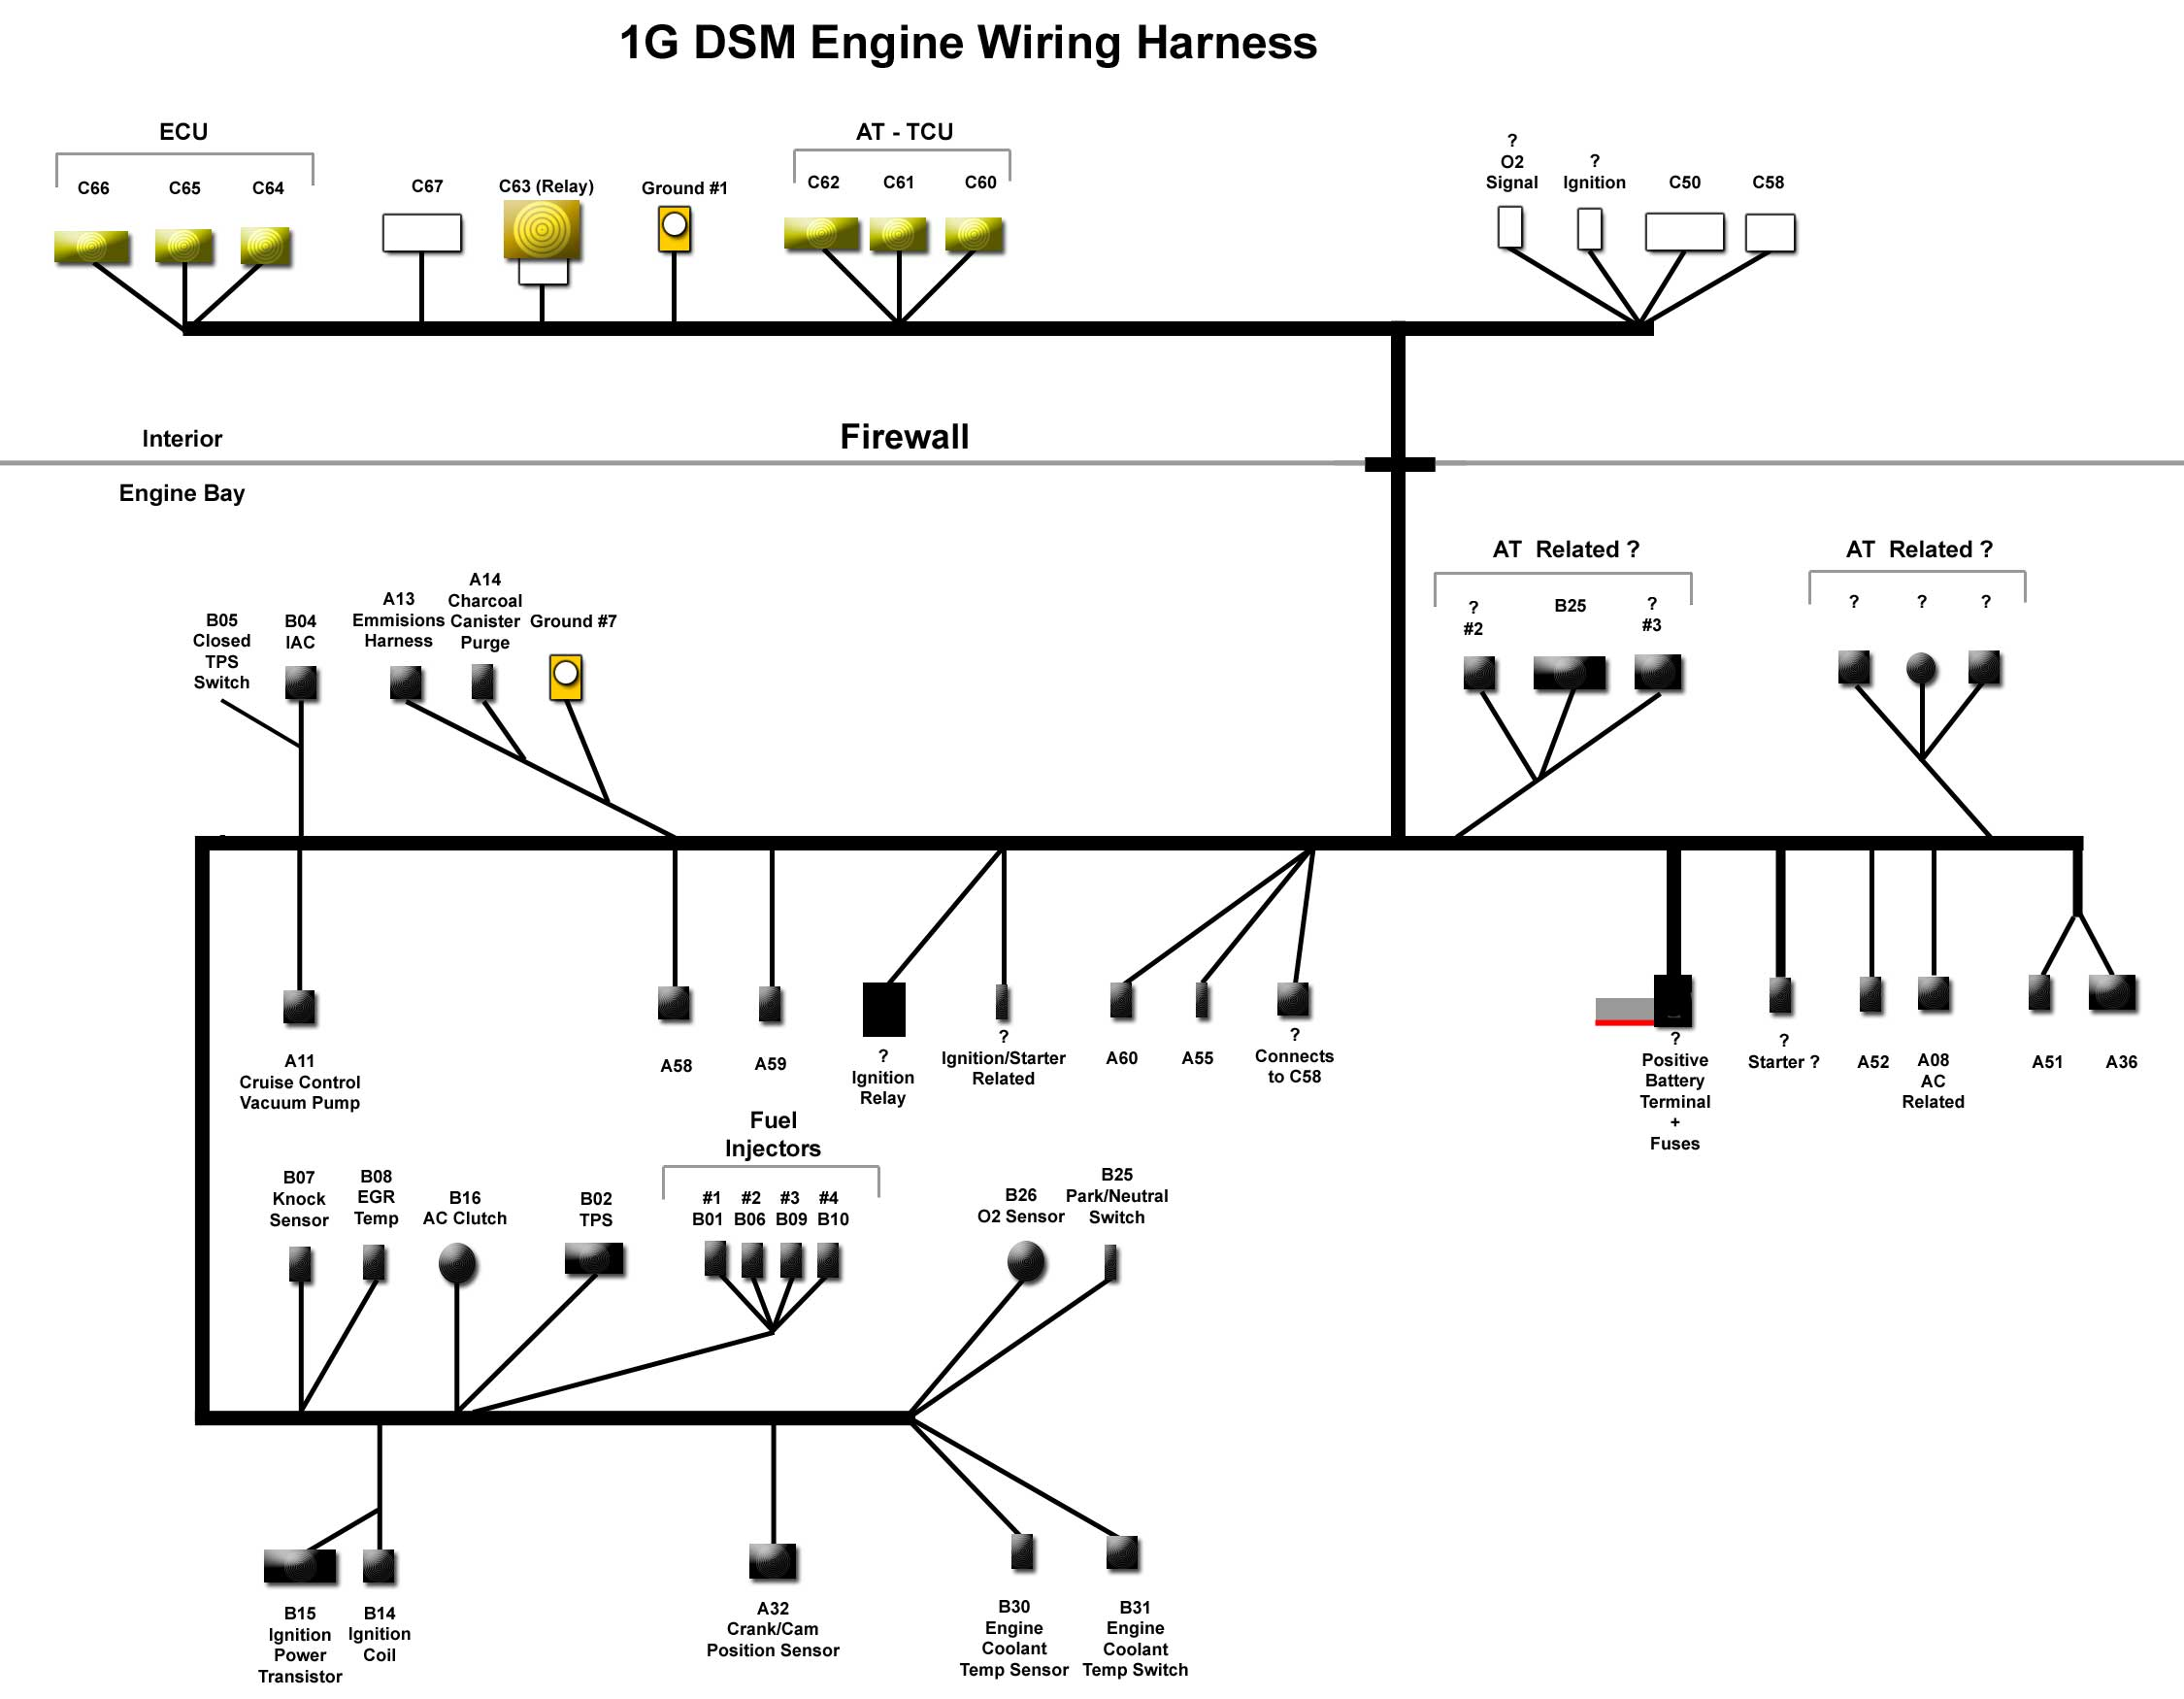 1G DSM EngineHarness 1gb dsm 4g63 turbo wiring harness diagram wiring harness diagram at mifinder.co